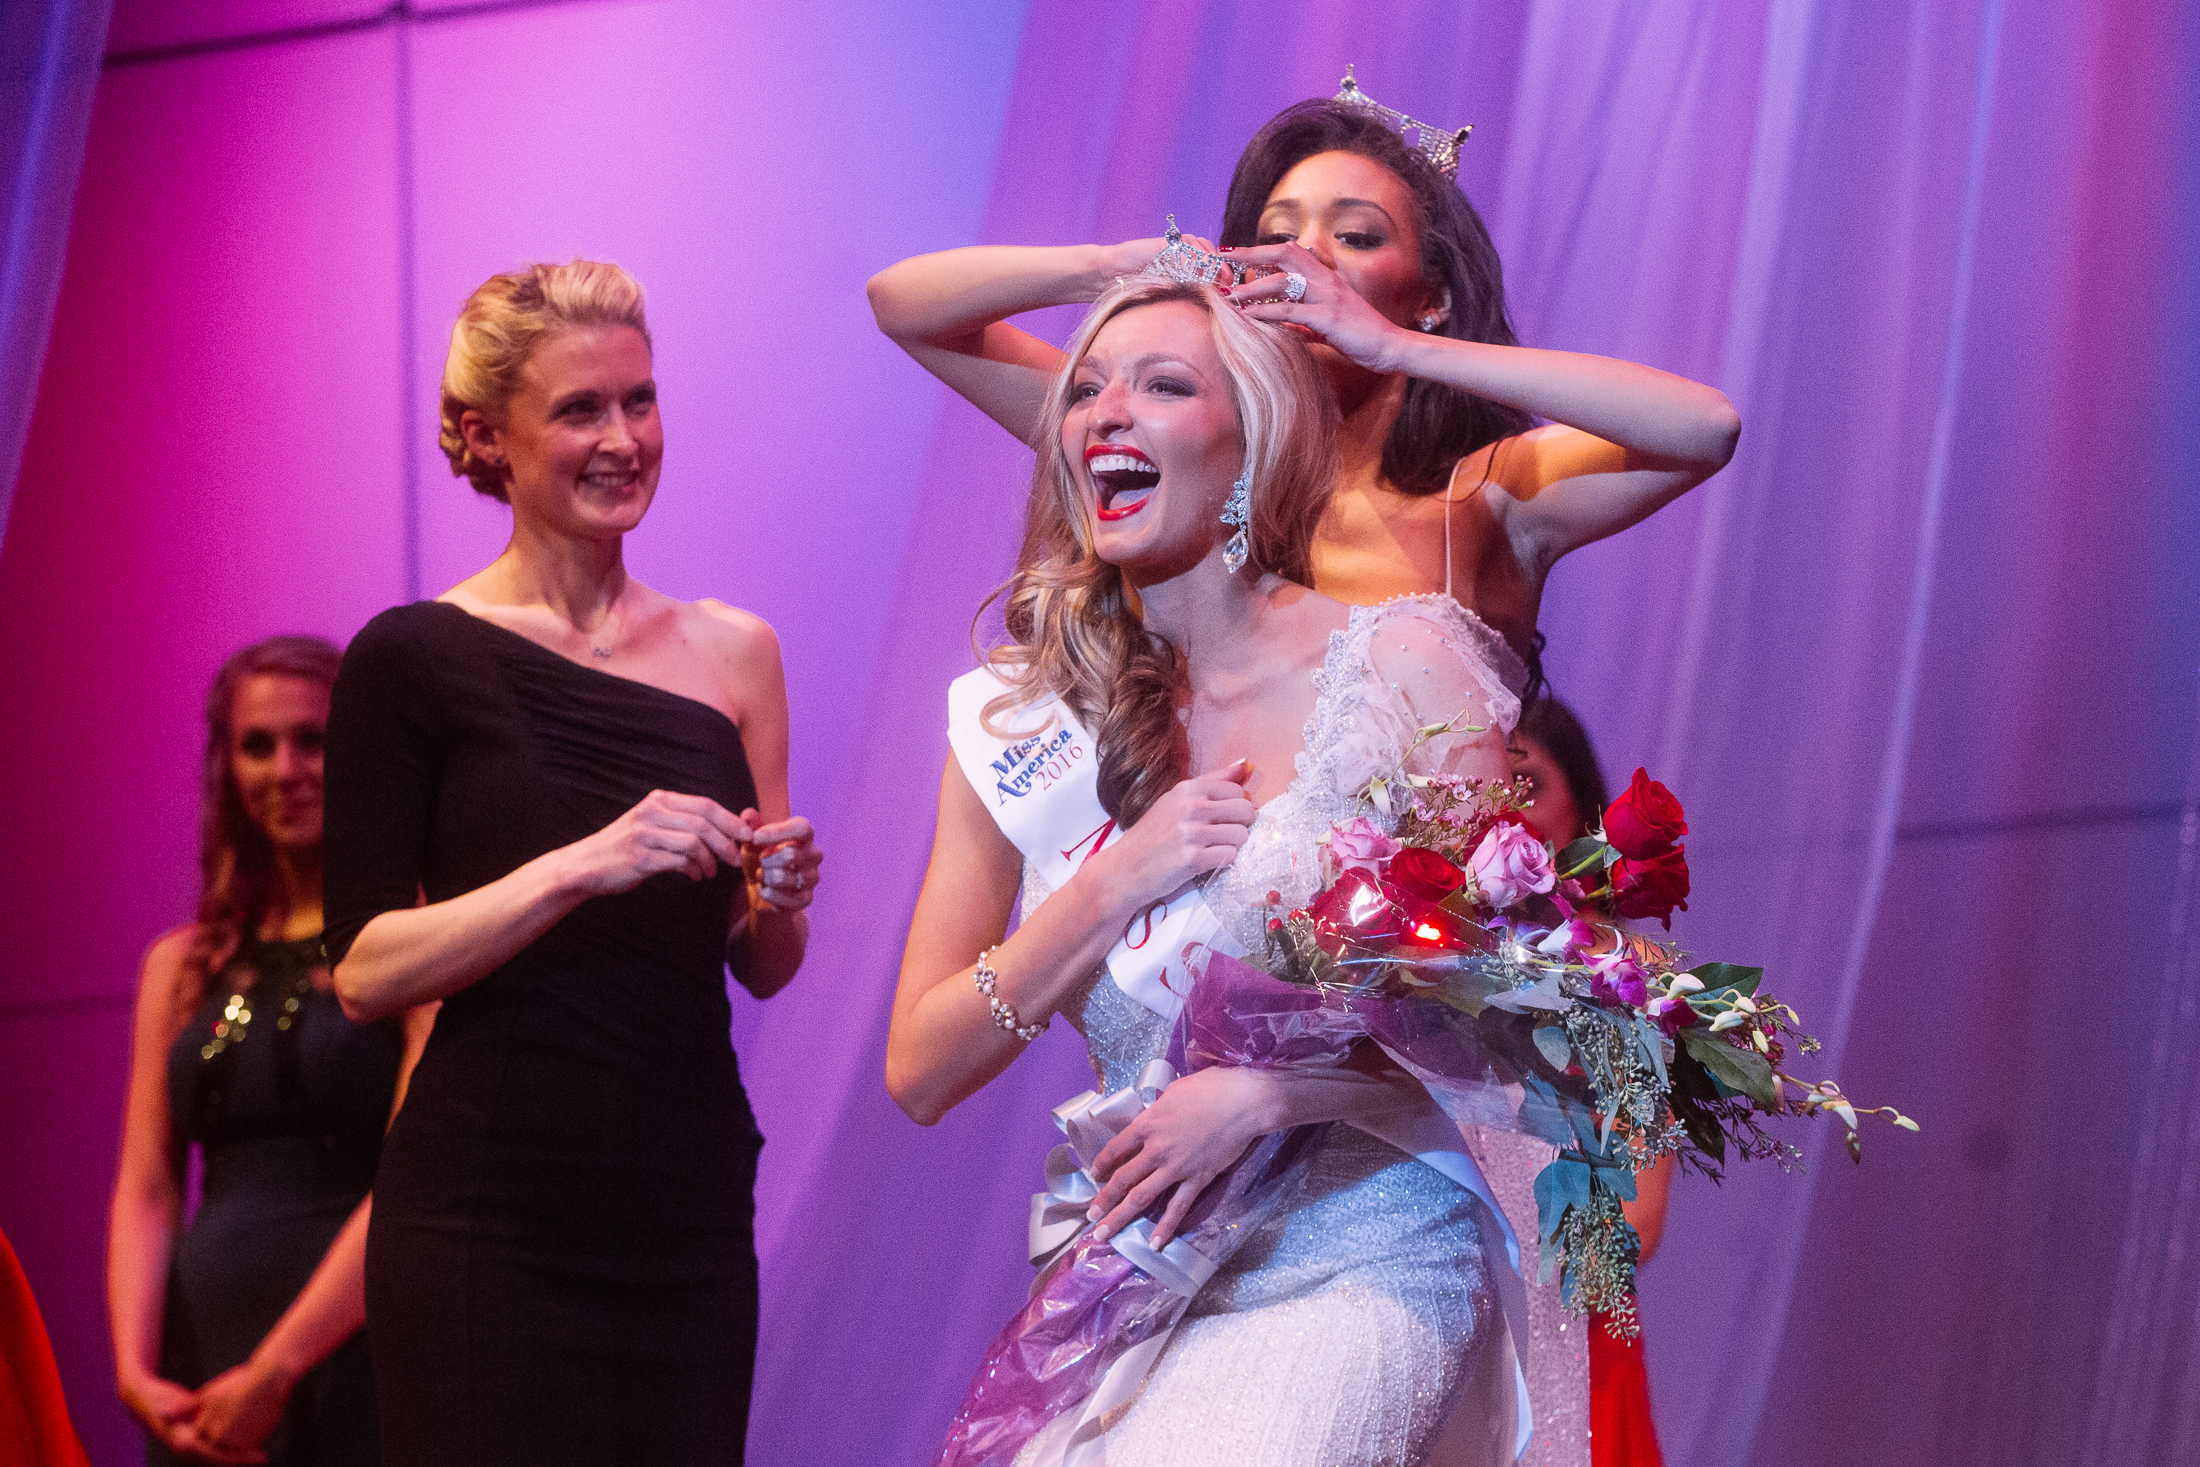 miss seattle comp1-42.jpg